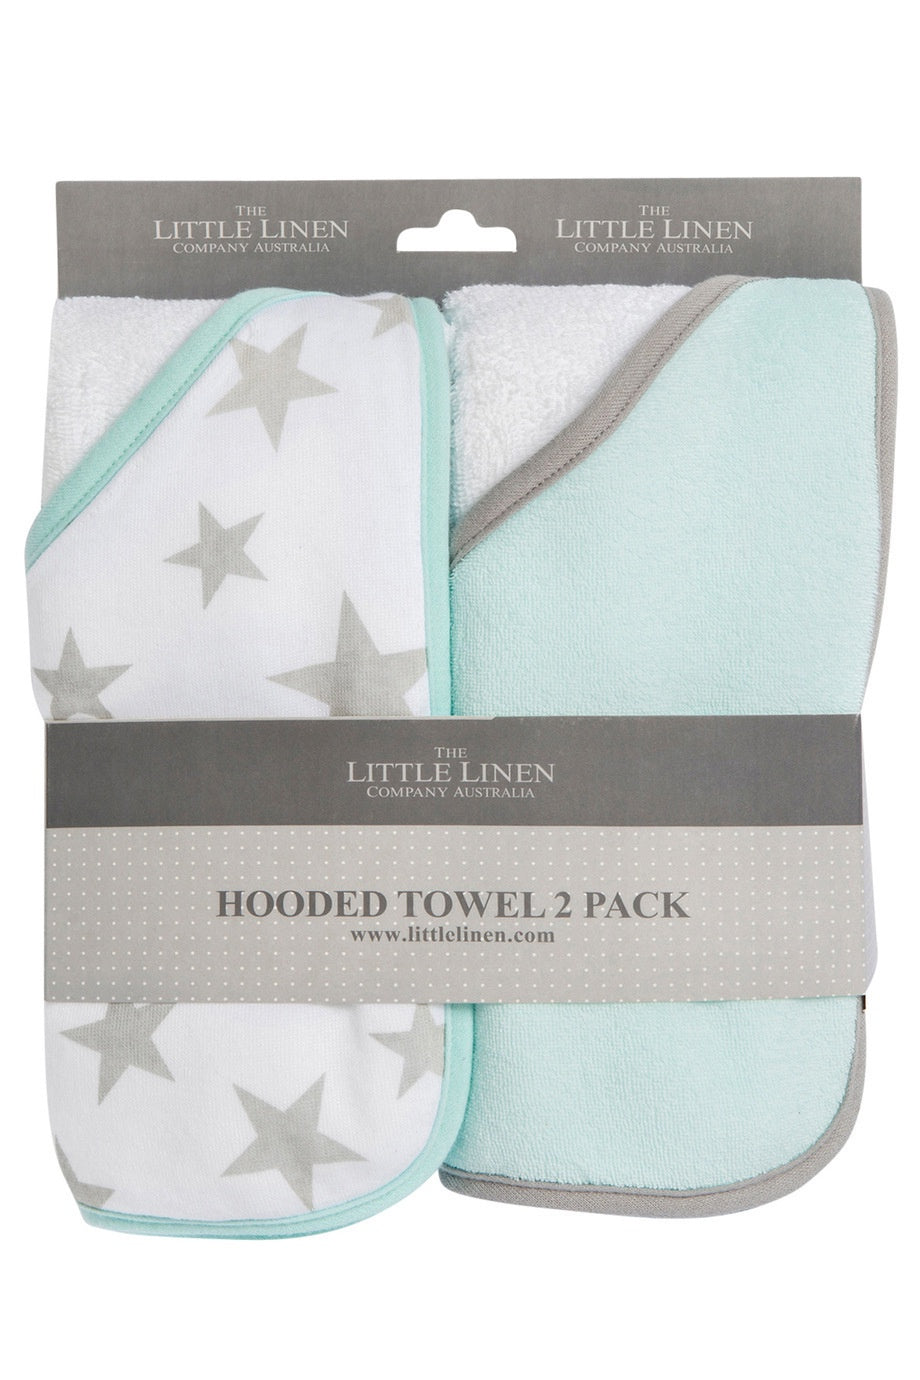 The Little Linen Co Hooded Towels 2pk - Starlight Mint